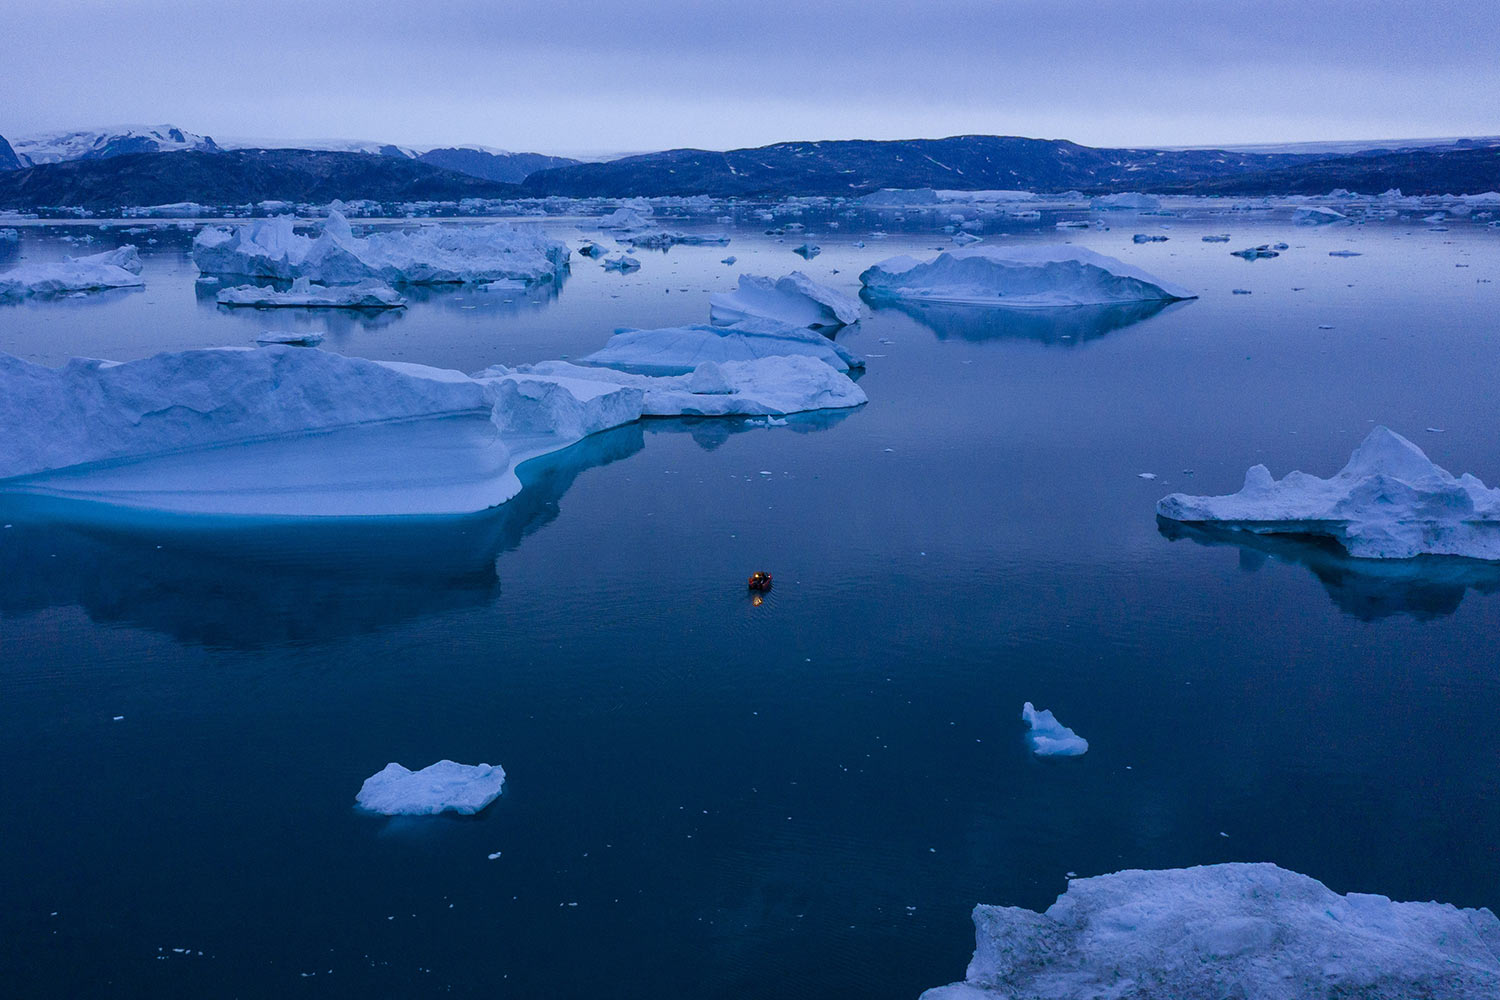 A boat navigates at night between icebergs in eastern Greenland, Aug. 15, 2019. Greenland has been melting faster in the last decade and this summer, it has seen two of the biggest melts on record since 2012. (AP Photo/Felipe Dana)